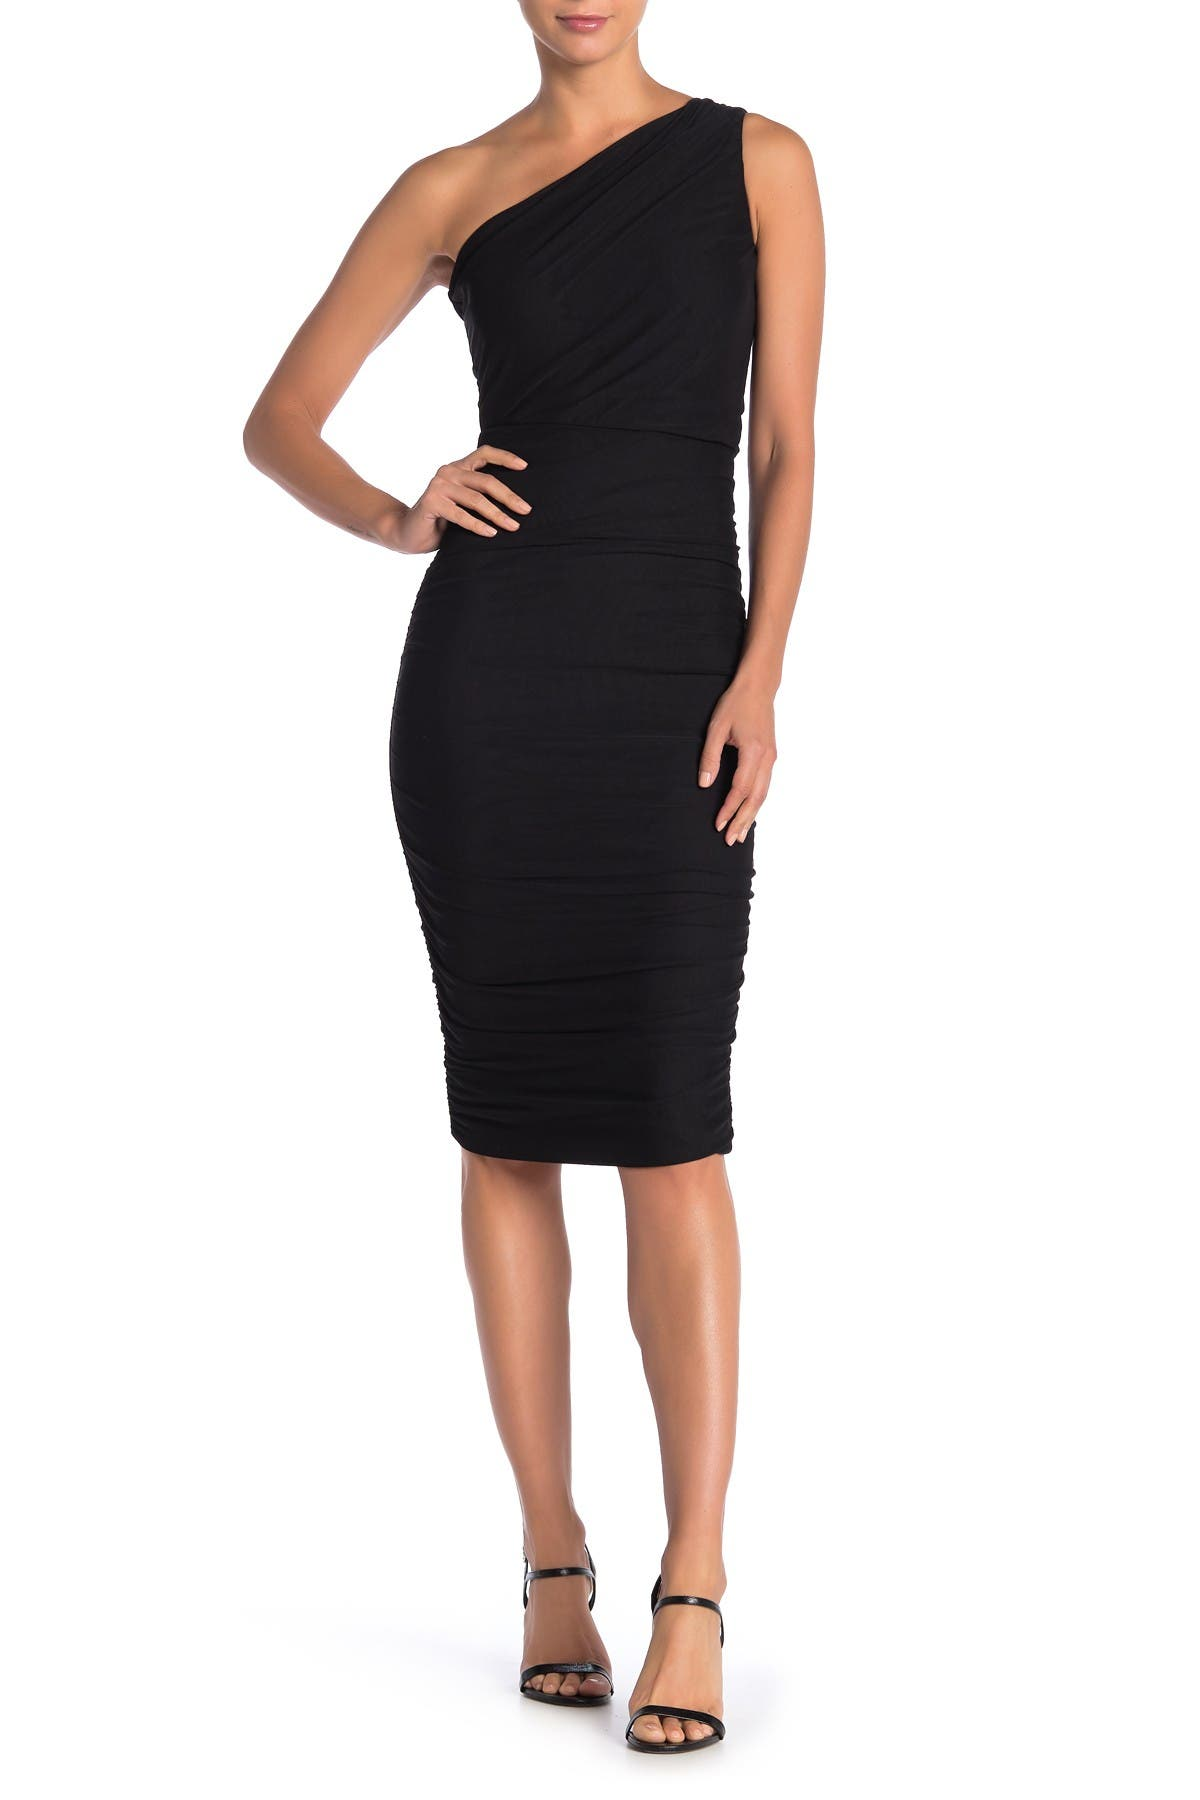 Love by Design Ruched One Shoulder Midi Dress